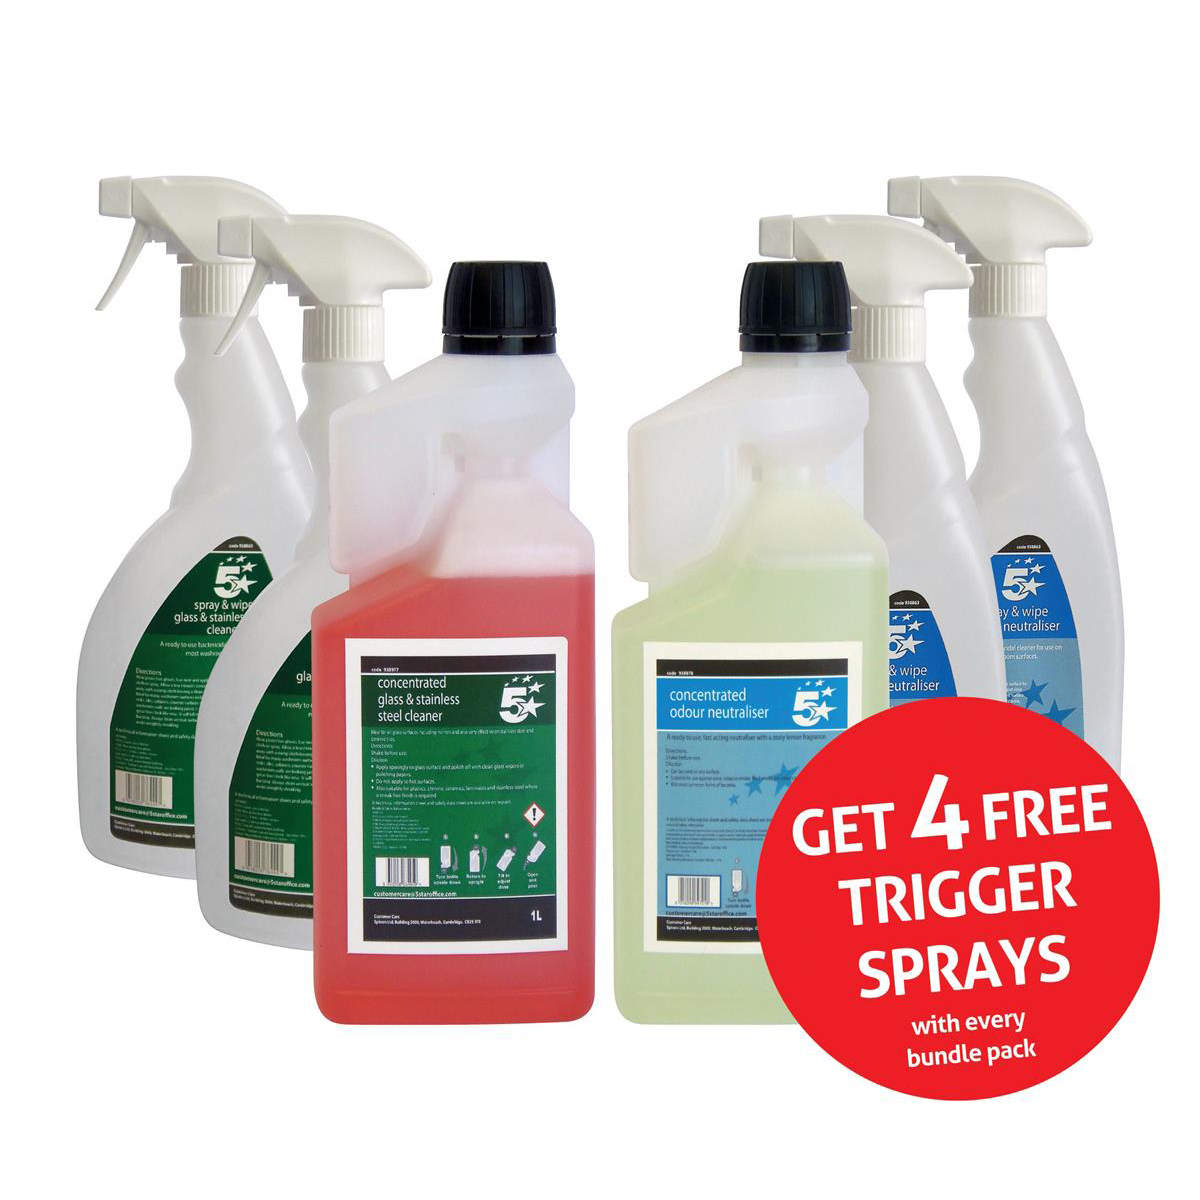 5 Star Facilities Glass/Stainless Steel Cleaner & Odour Neutraliser 1 Litre [FREE 750ml Trigger Bottles]